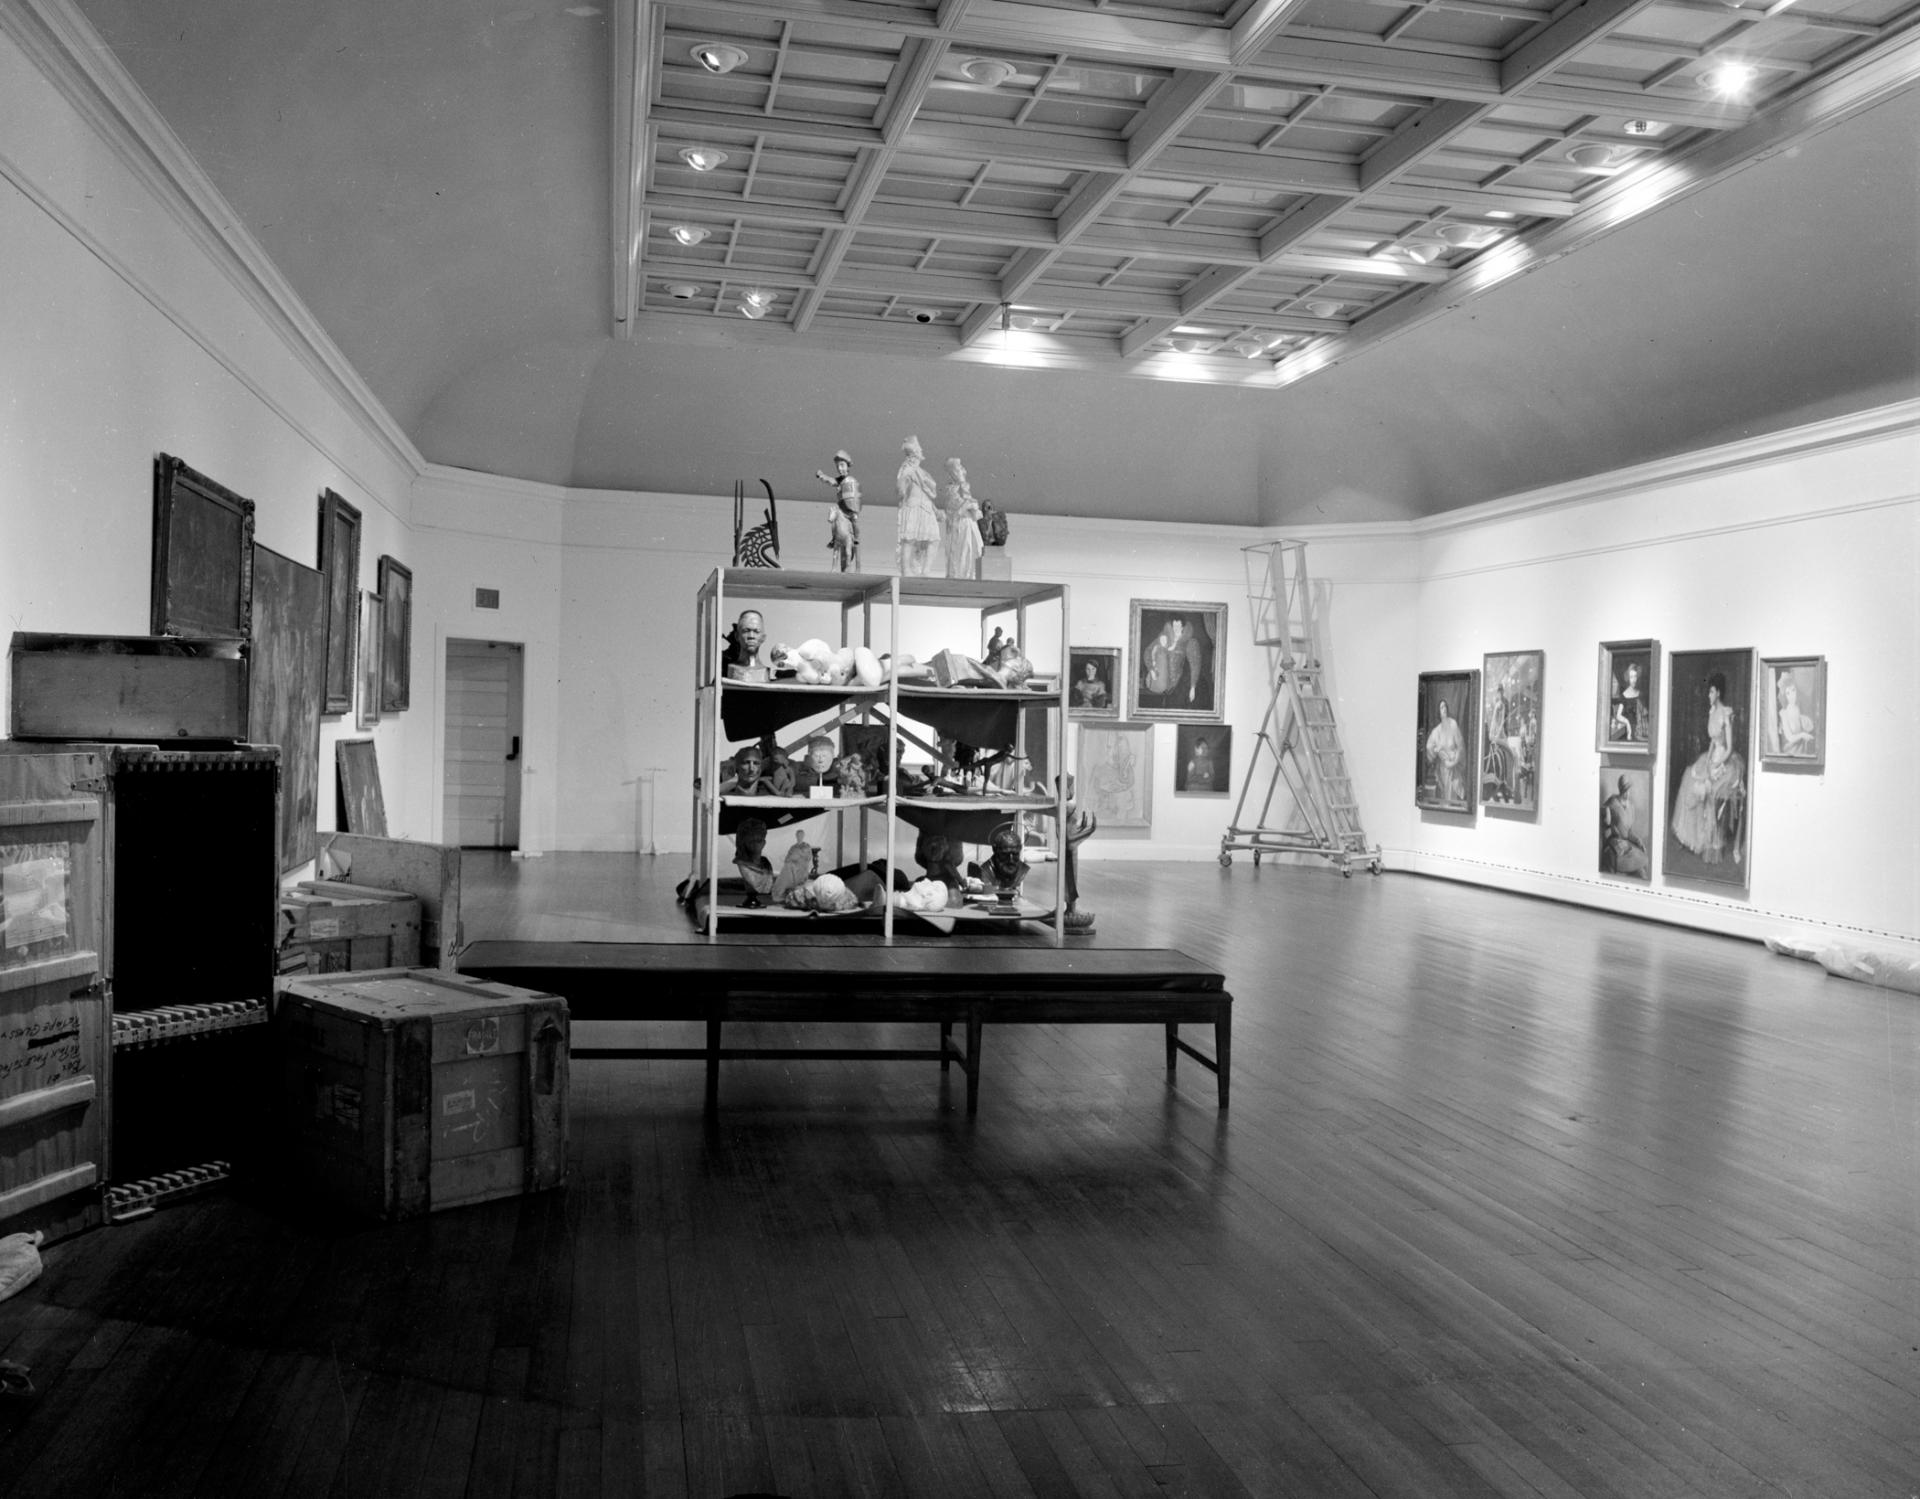 Installation photograph of Raid the Icebox 1 with Andy Warhol, RISD Museum, 1970. Courtesy of RISD Archives.